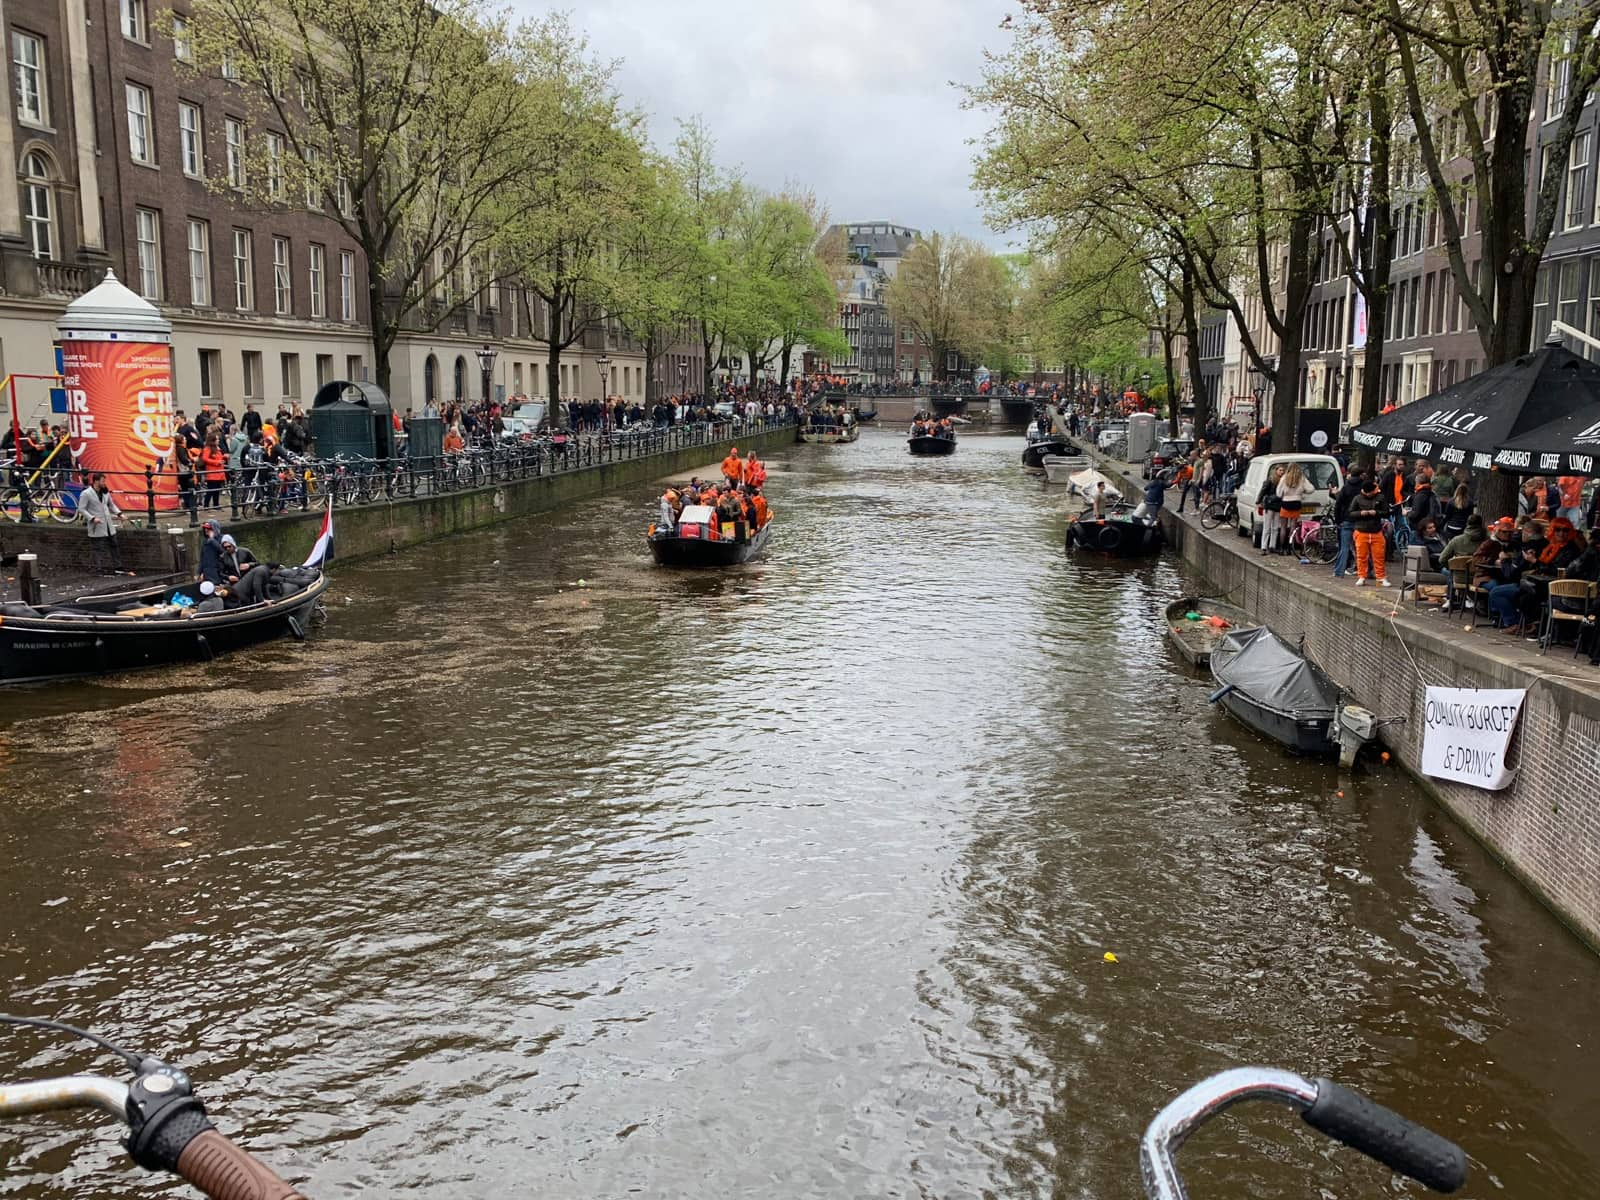 A canal river as seen from a perpendicular bridge. There are several bits of people wearing orange and celebrating, and the banks are also filled with people wearing orange